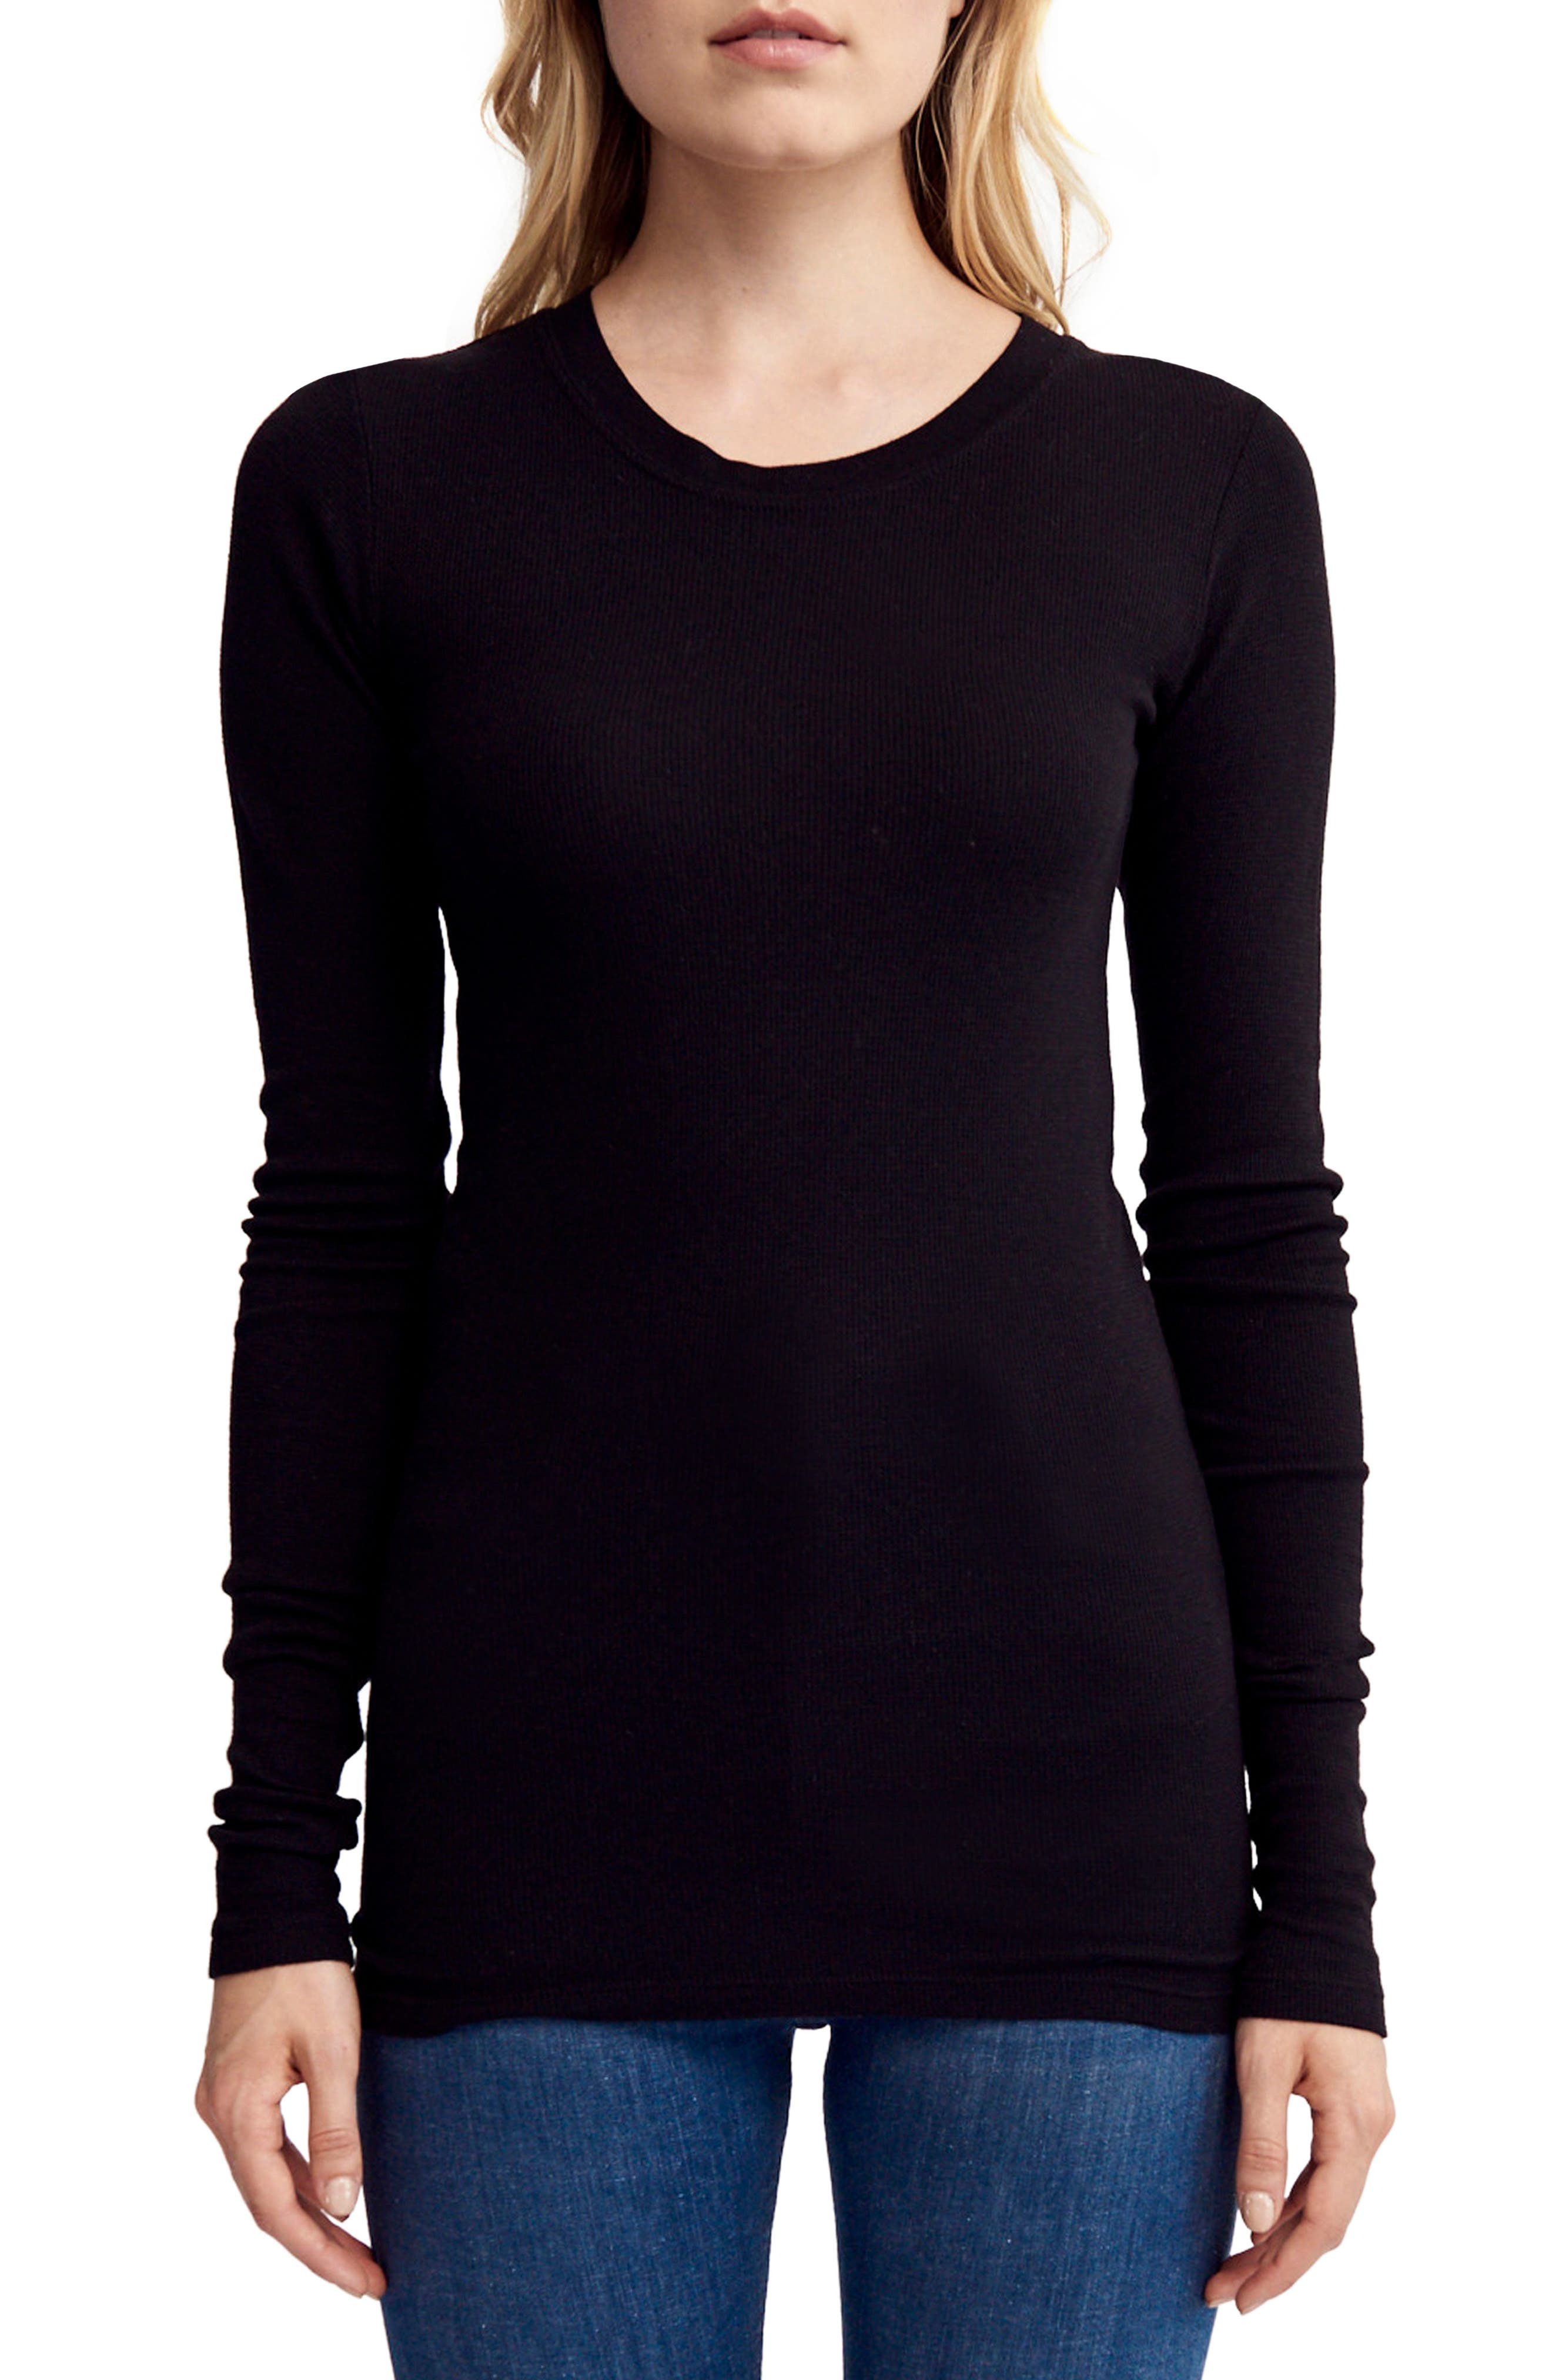 Thermal Knit Top,                         Main,                         color, 001